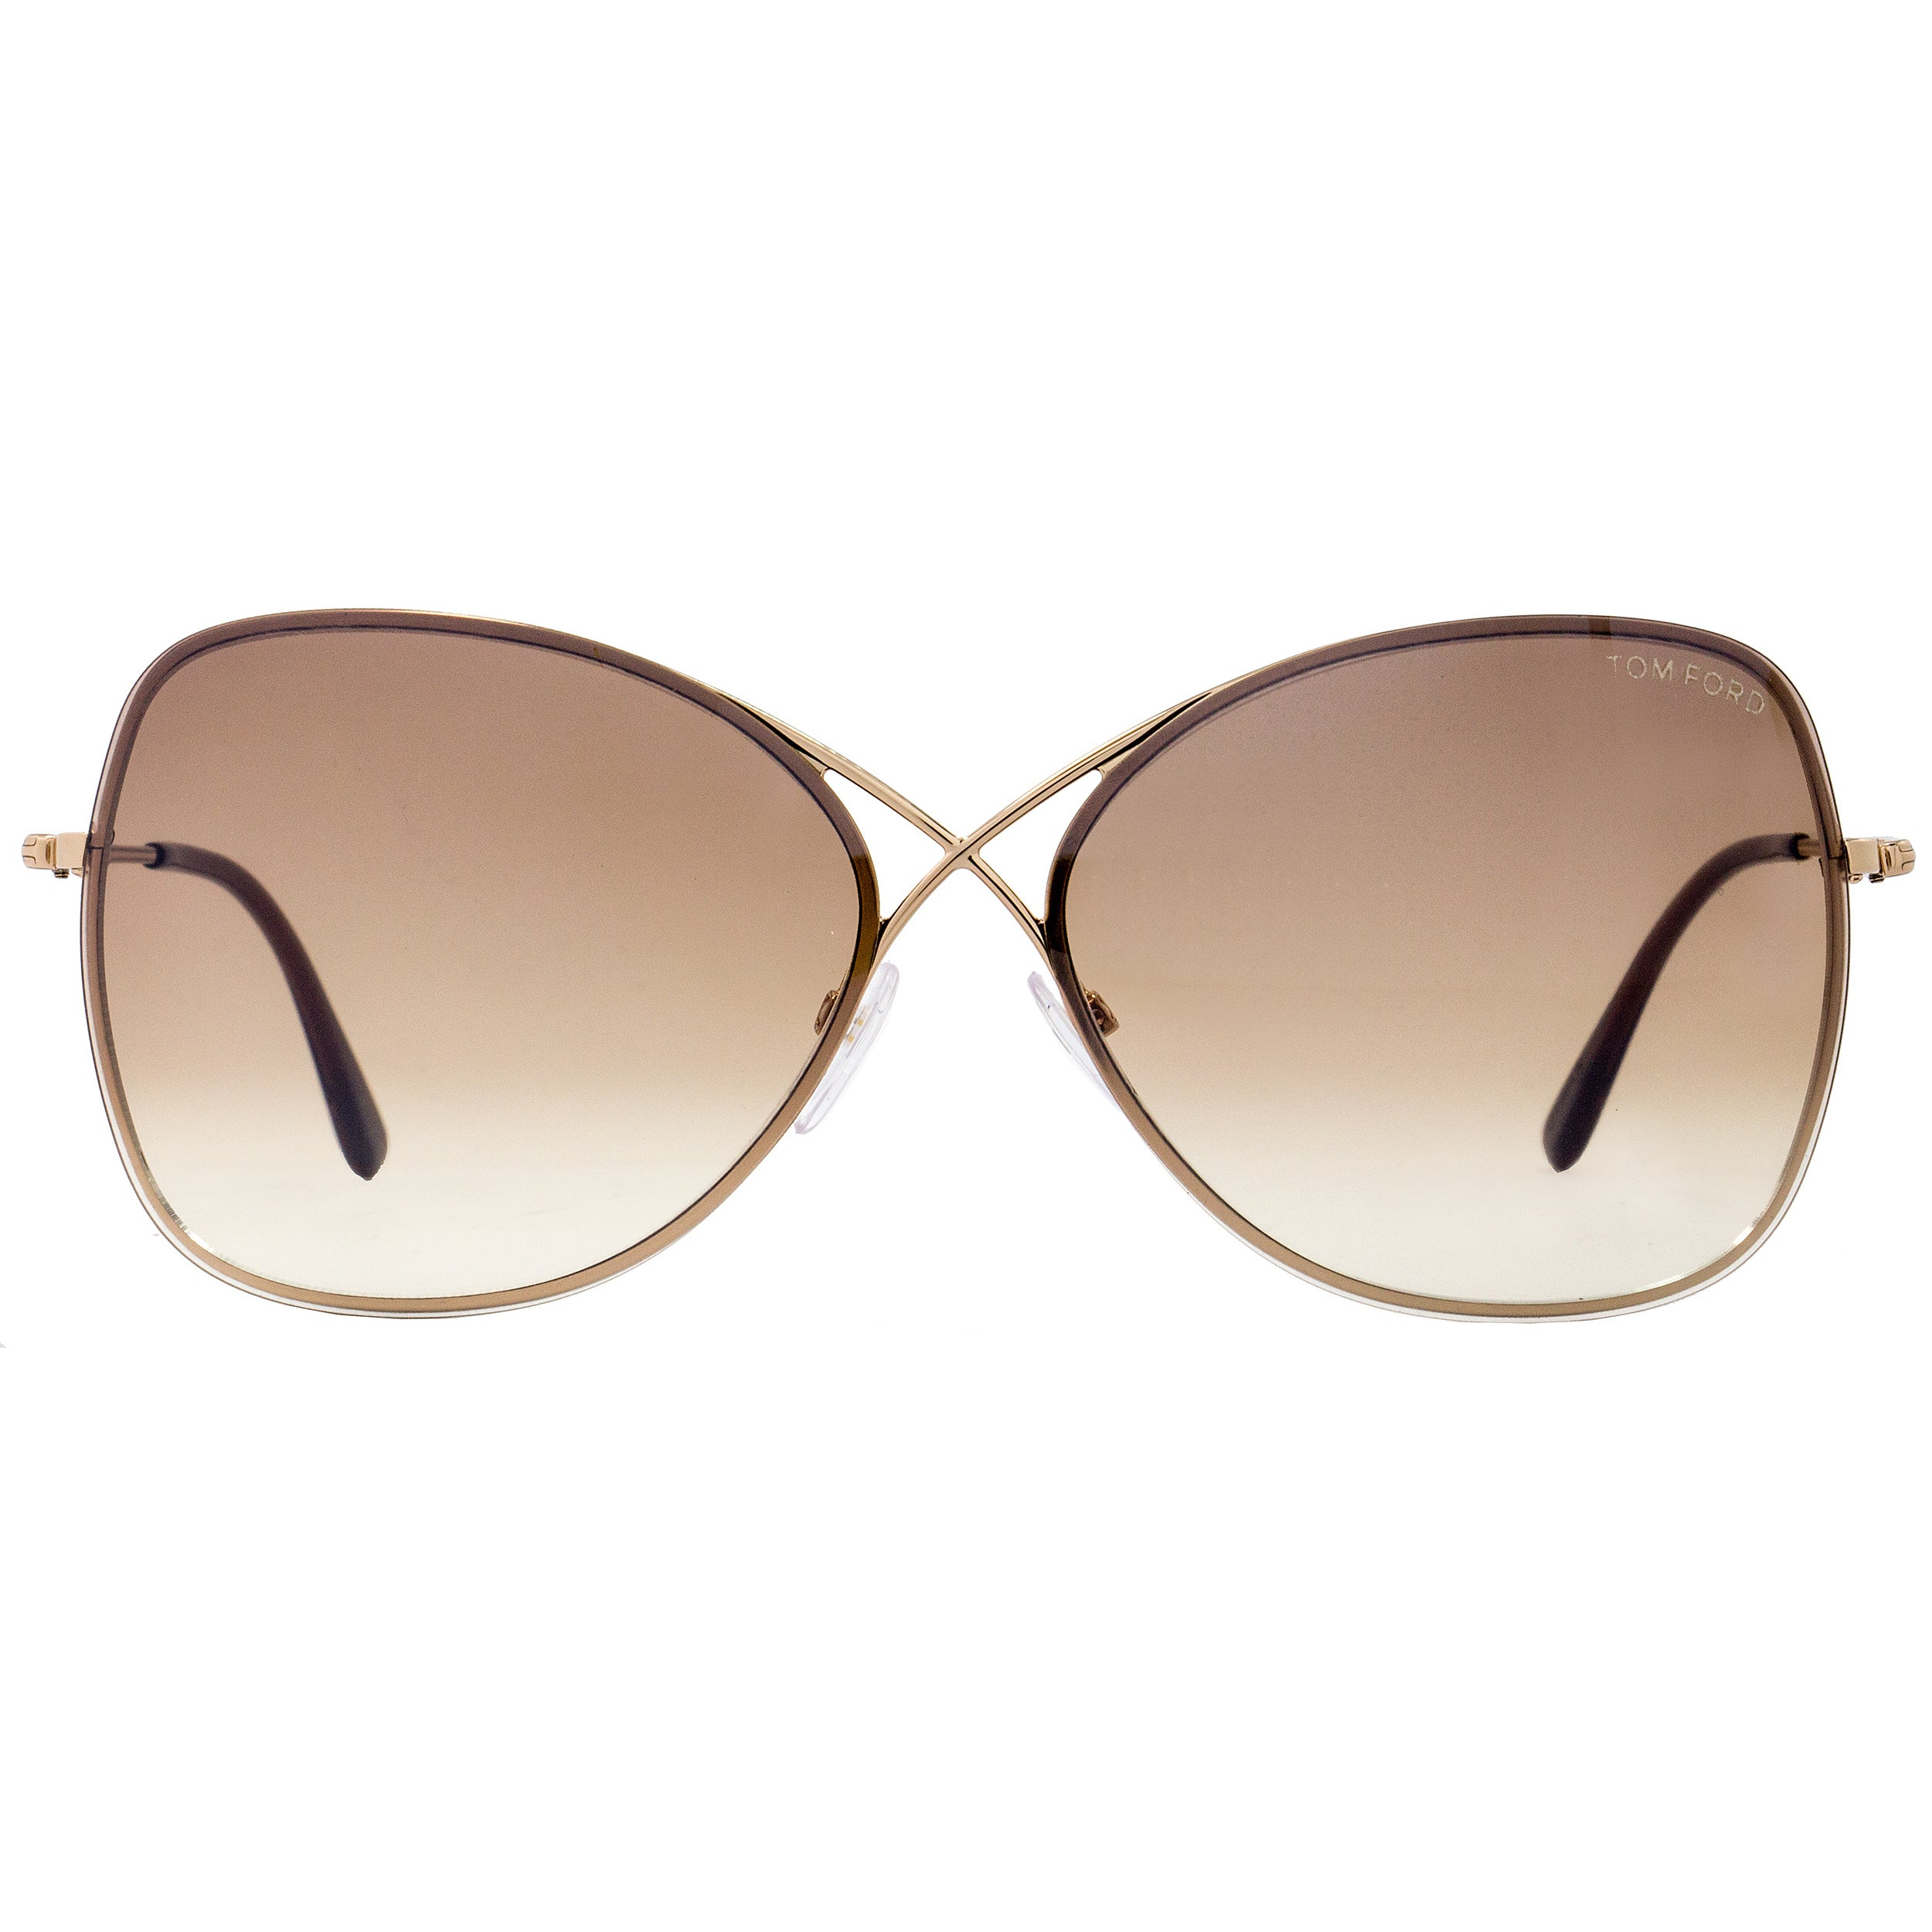 61a753aa07e1a Shop Tom Ford TF250 Colette 28F Women s Rose Gold Brown Gradient Lens  Sunglasses - Free Shipping Today - Overstock - 18221862